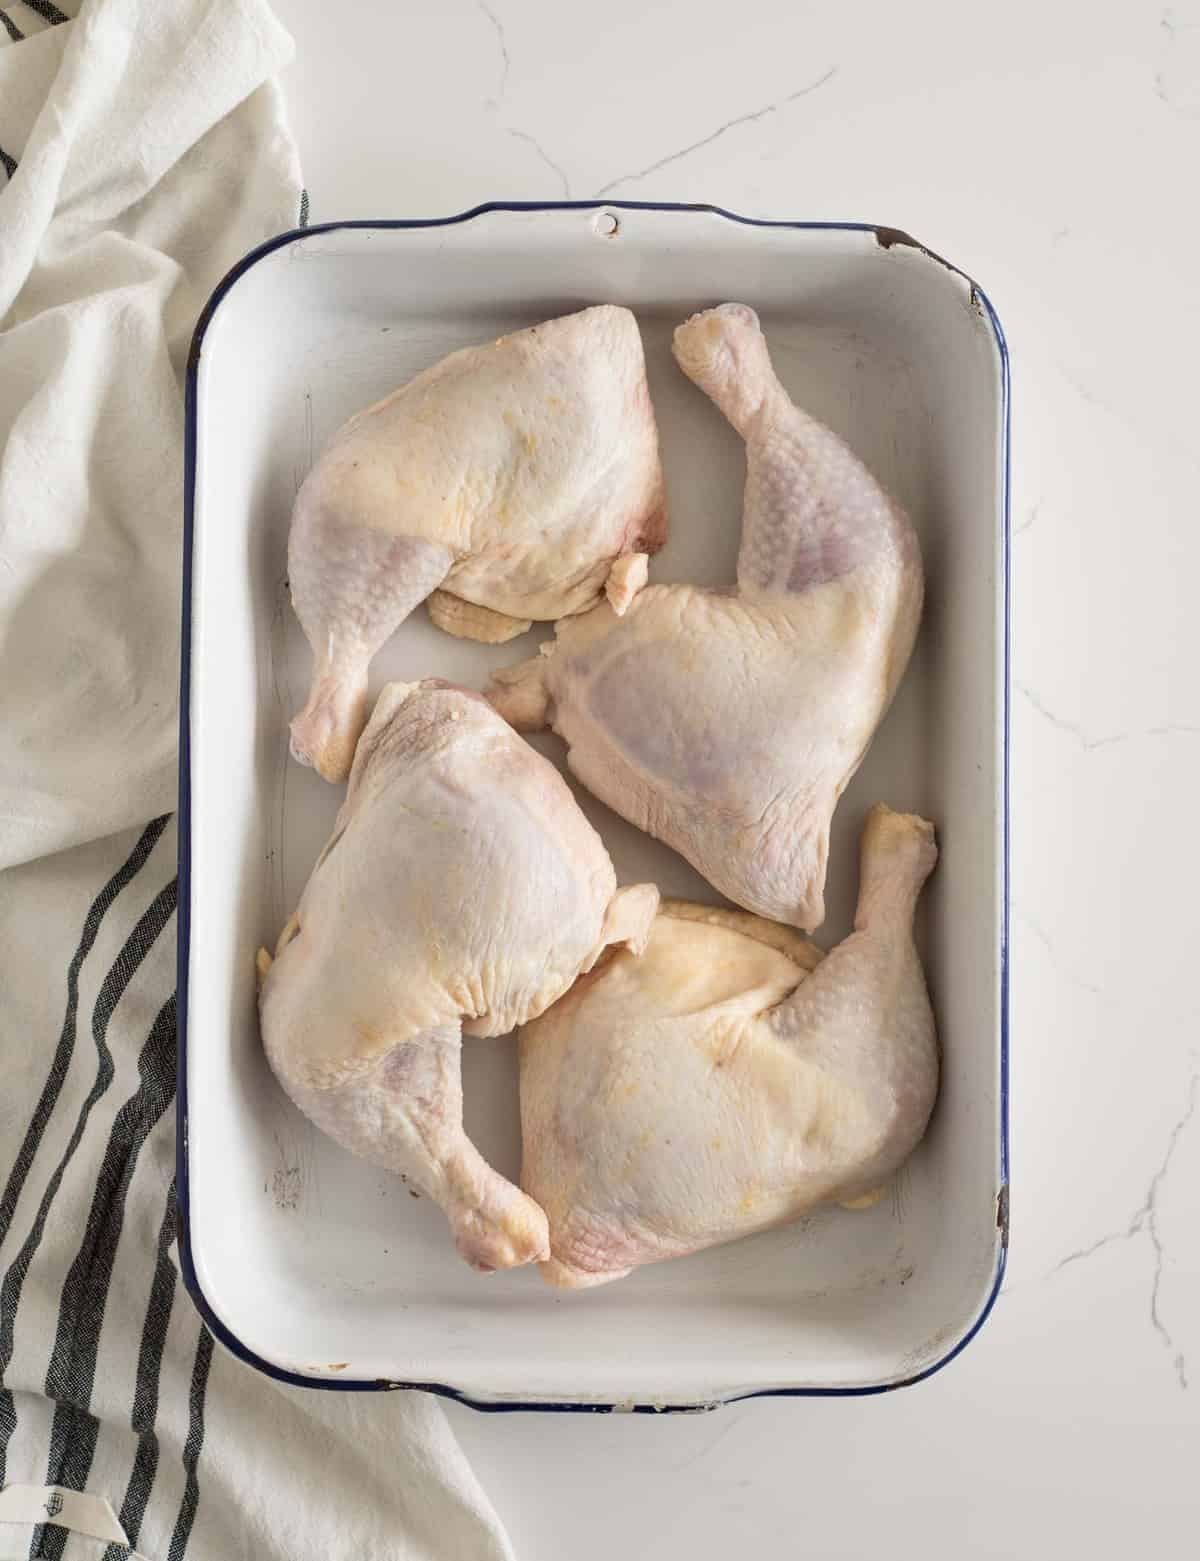 Ever wonder how long to bake chicken leg quarters, thighs, or legs? This post will tell you just that plus the difference in various cuts, and how to best cook them.